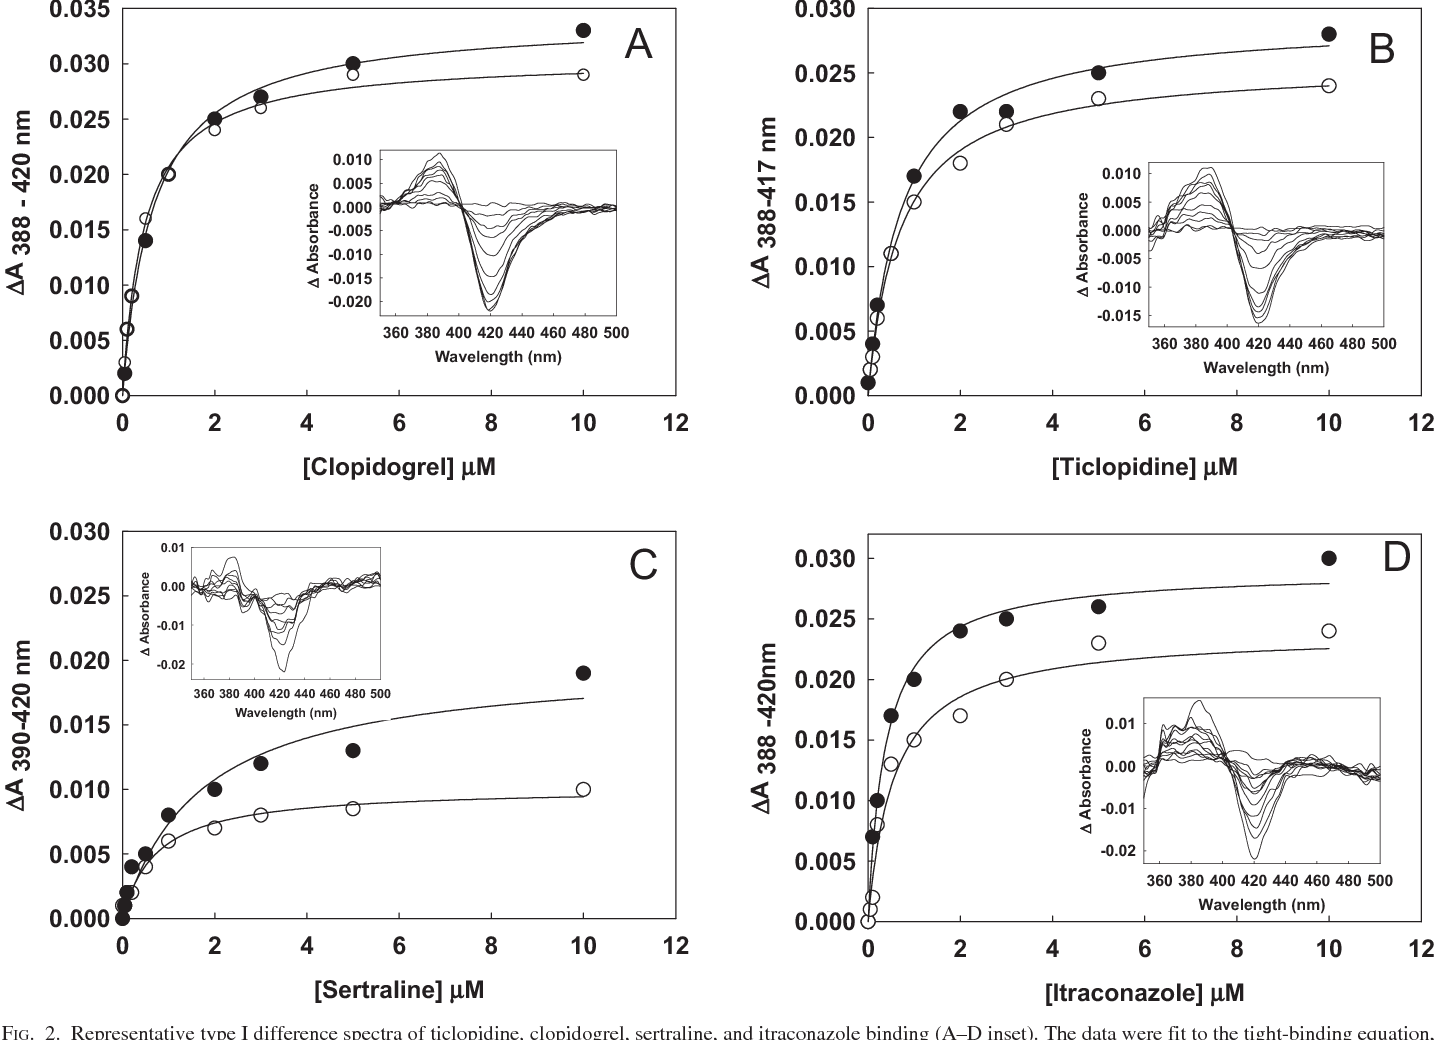 FIG. 2. Representative type I difference spectra of ticlopidine, clopidogrel, sertraline, and itraconazole binding (A–D inset). The data were fit to the tight-binding equation, as described under Materials and Methods, to derive the Ks values as listed in Table 1.